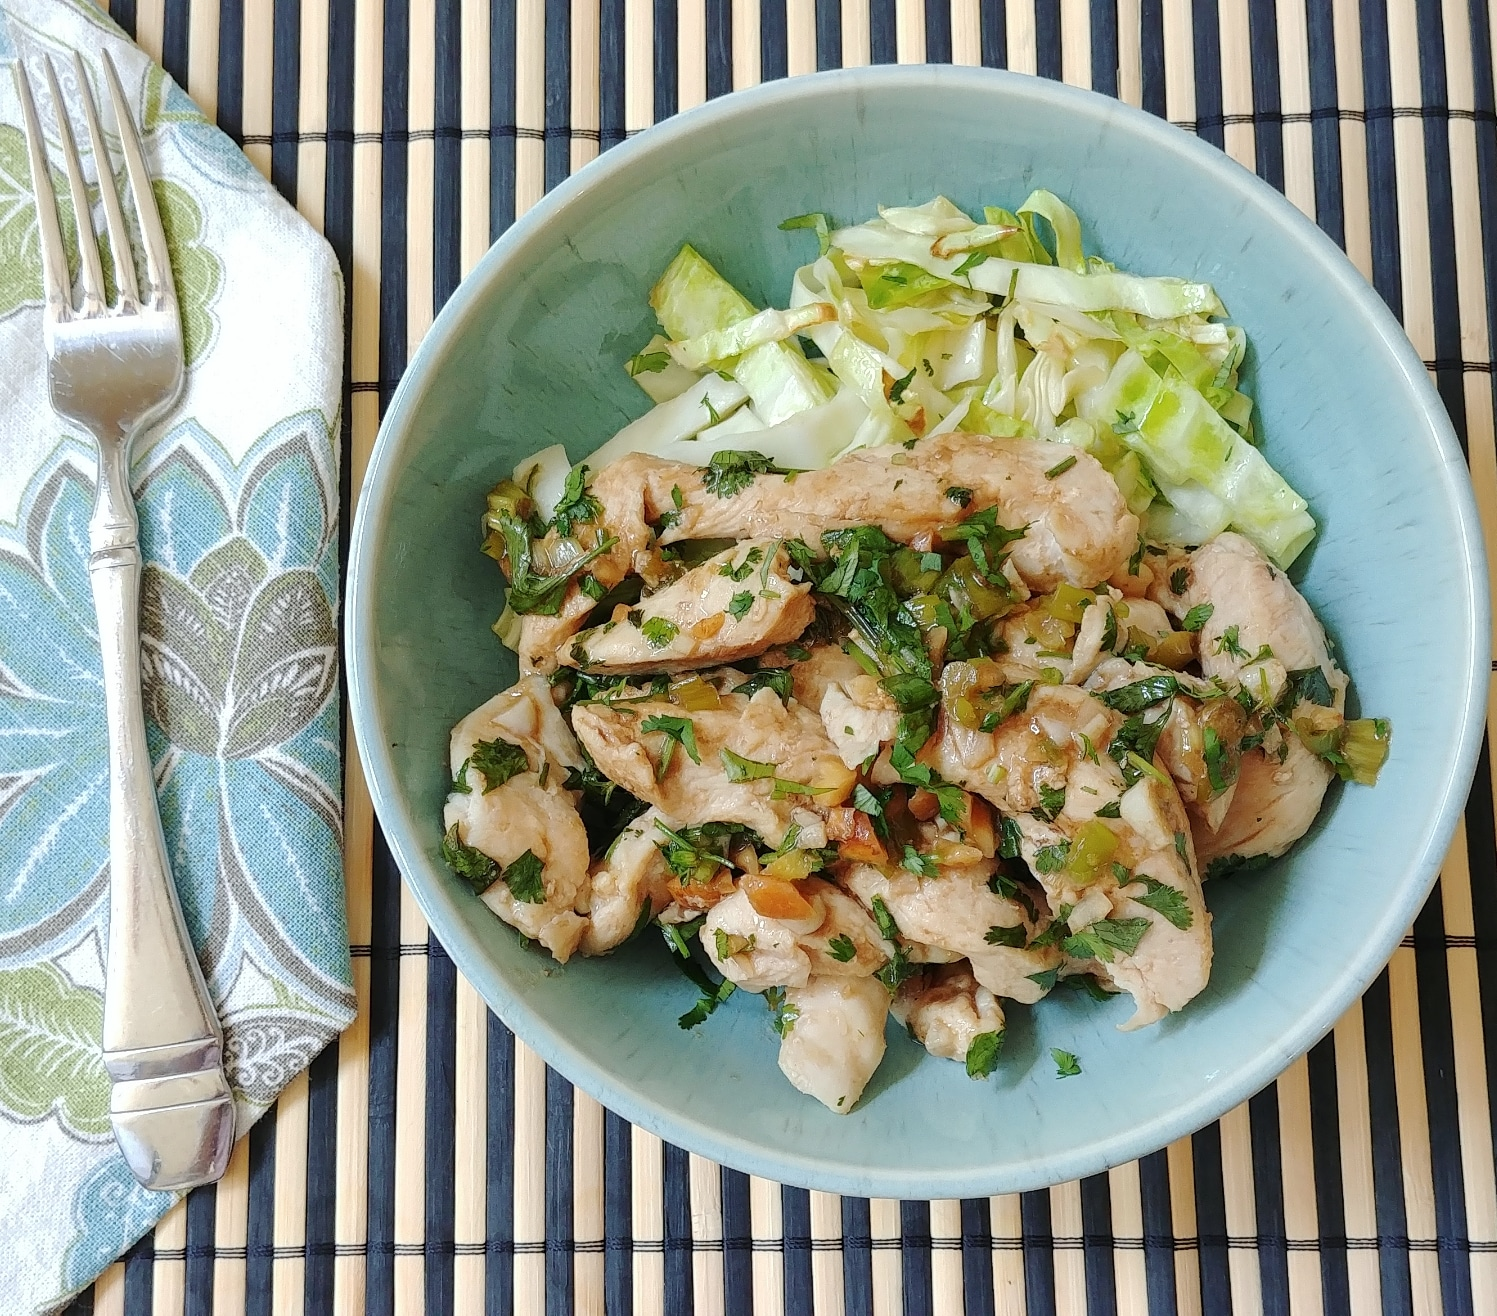 Cilantro Chicken with Peanuts in blue bowl next to napkin and fork